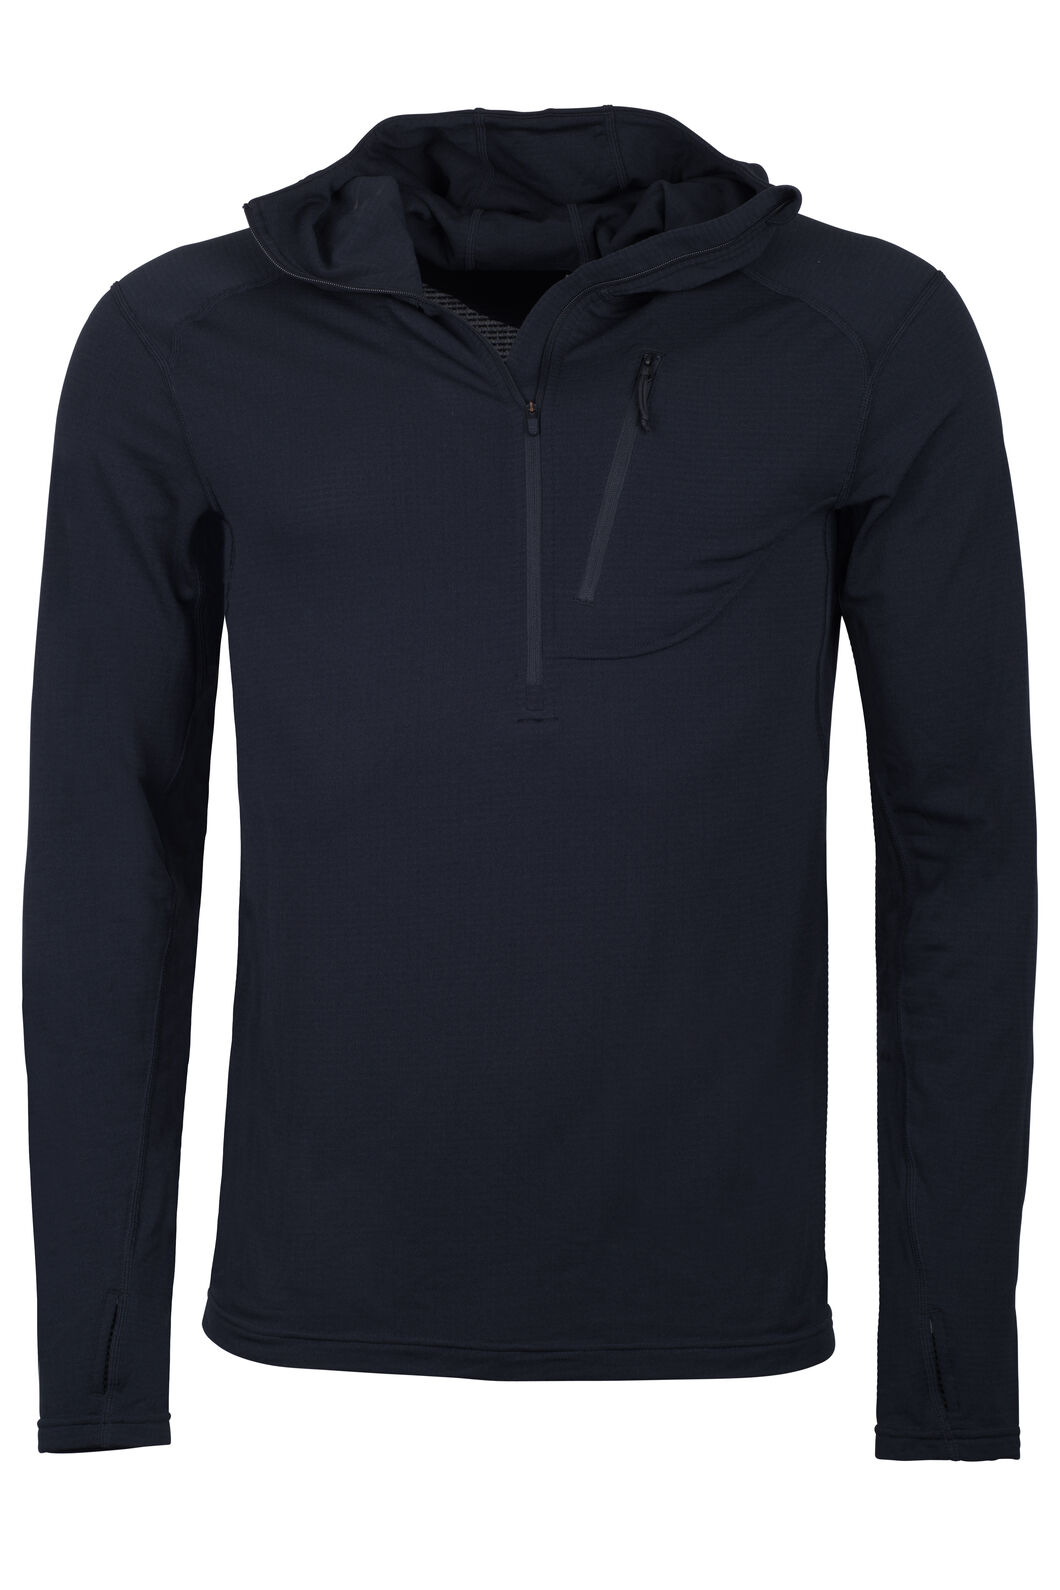 Macpac Prothermal Polartec® Hooded Pullover — Men's, Black, hi-res